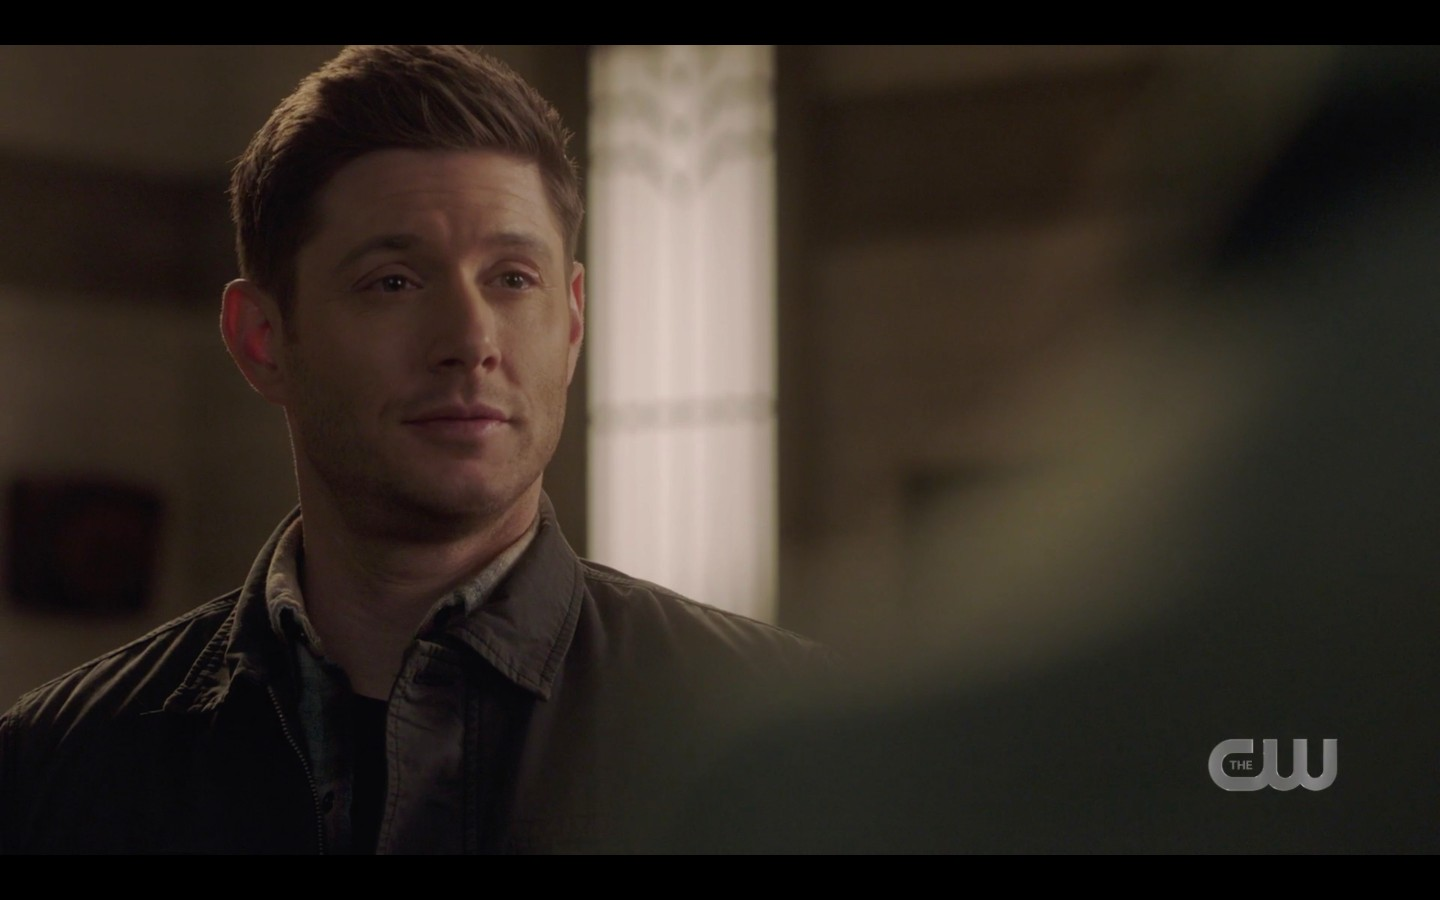 Dean Winchester to Sam I hear you wore a cardigan spn 1415